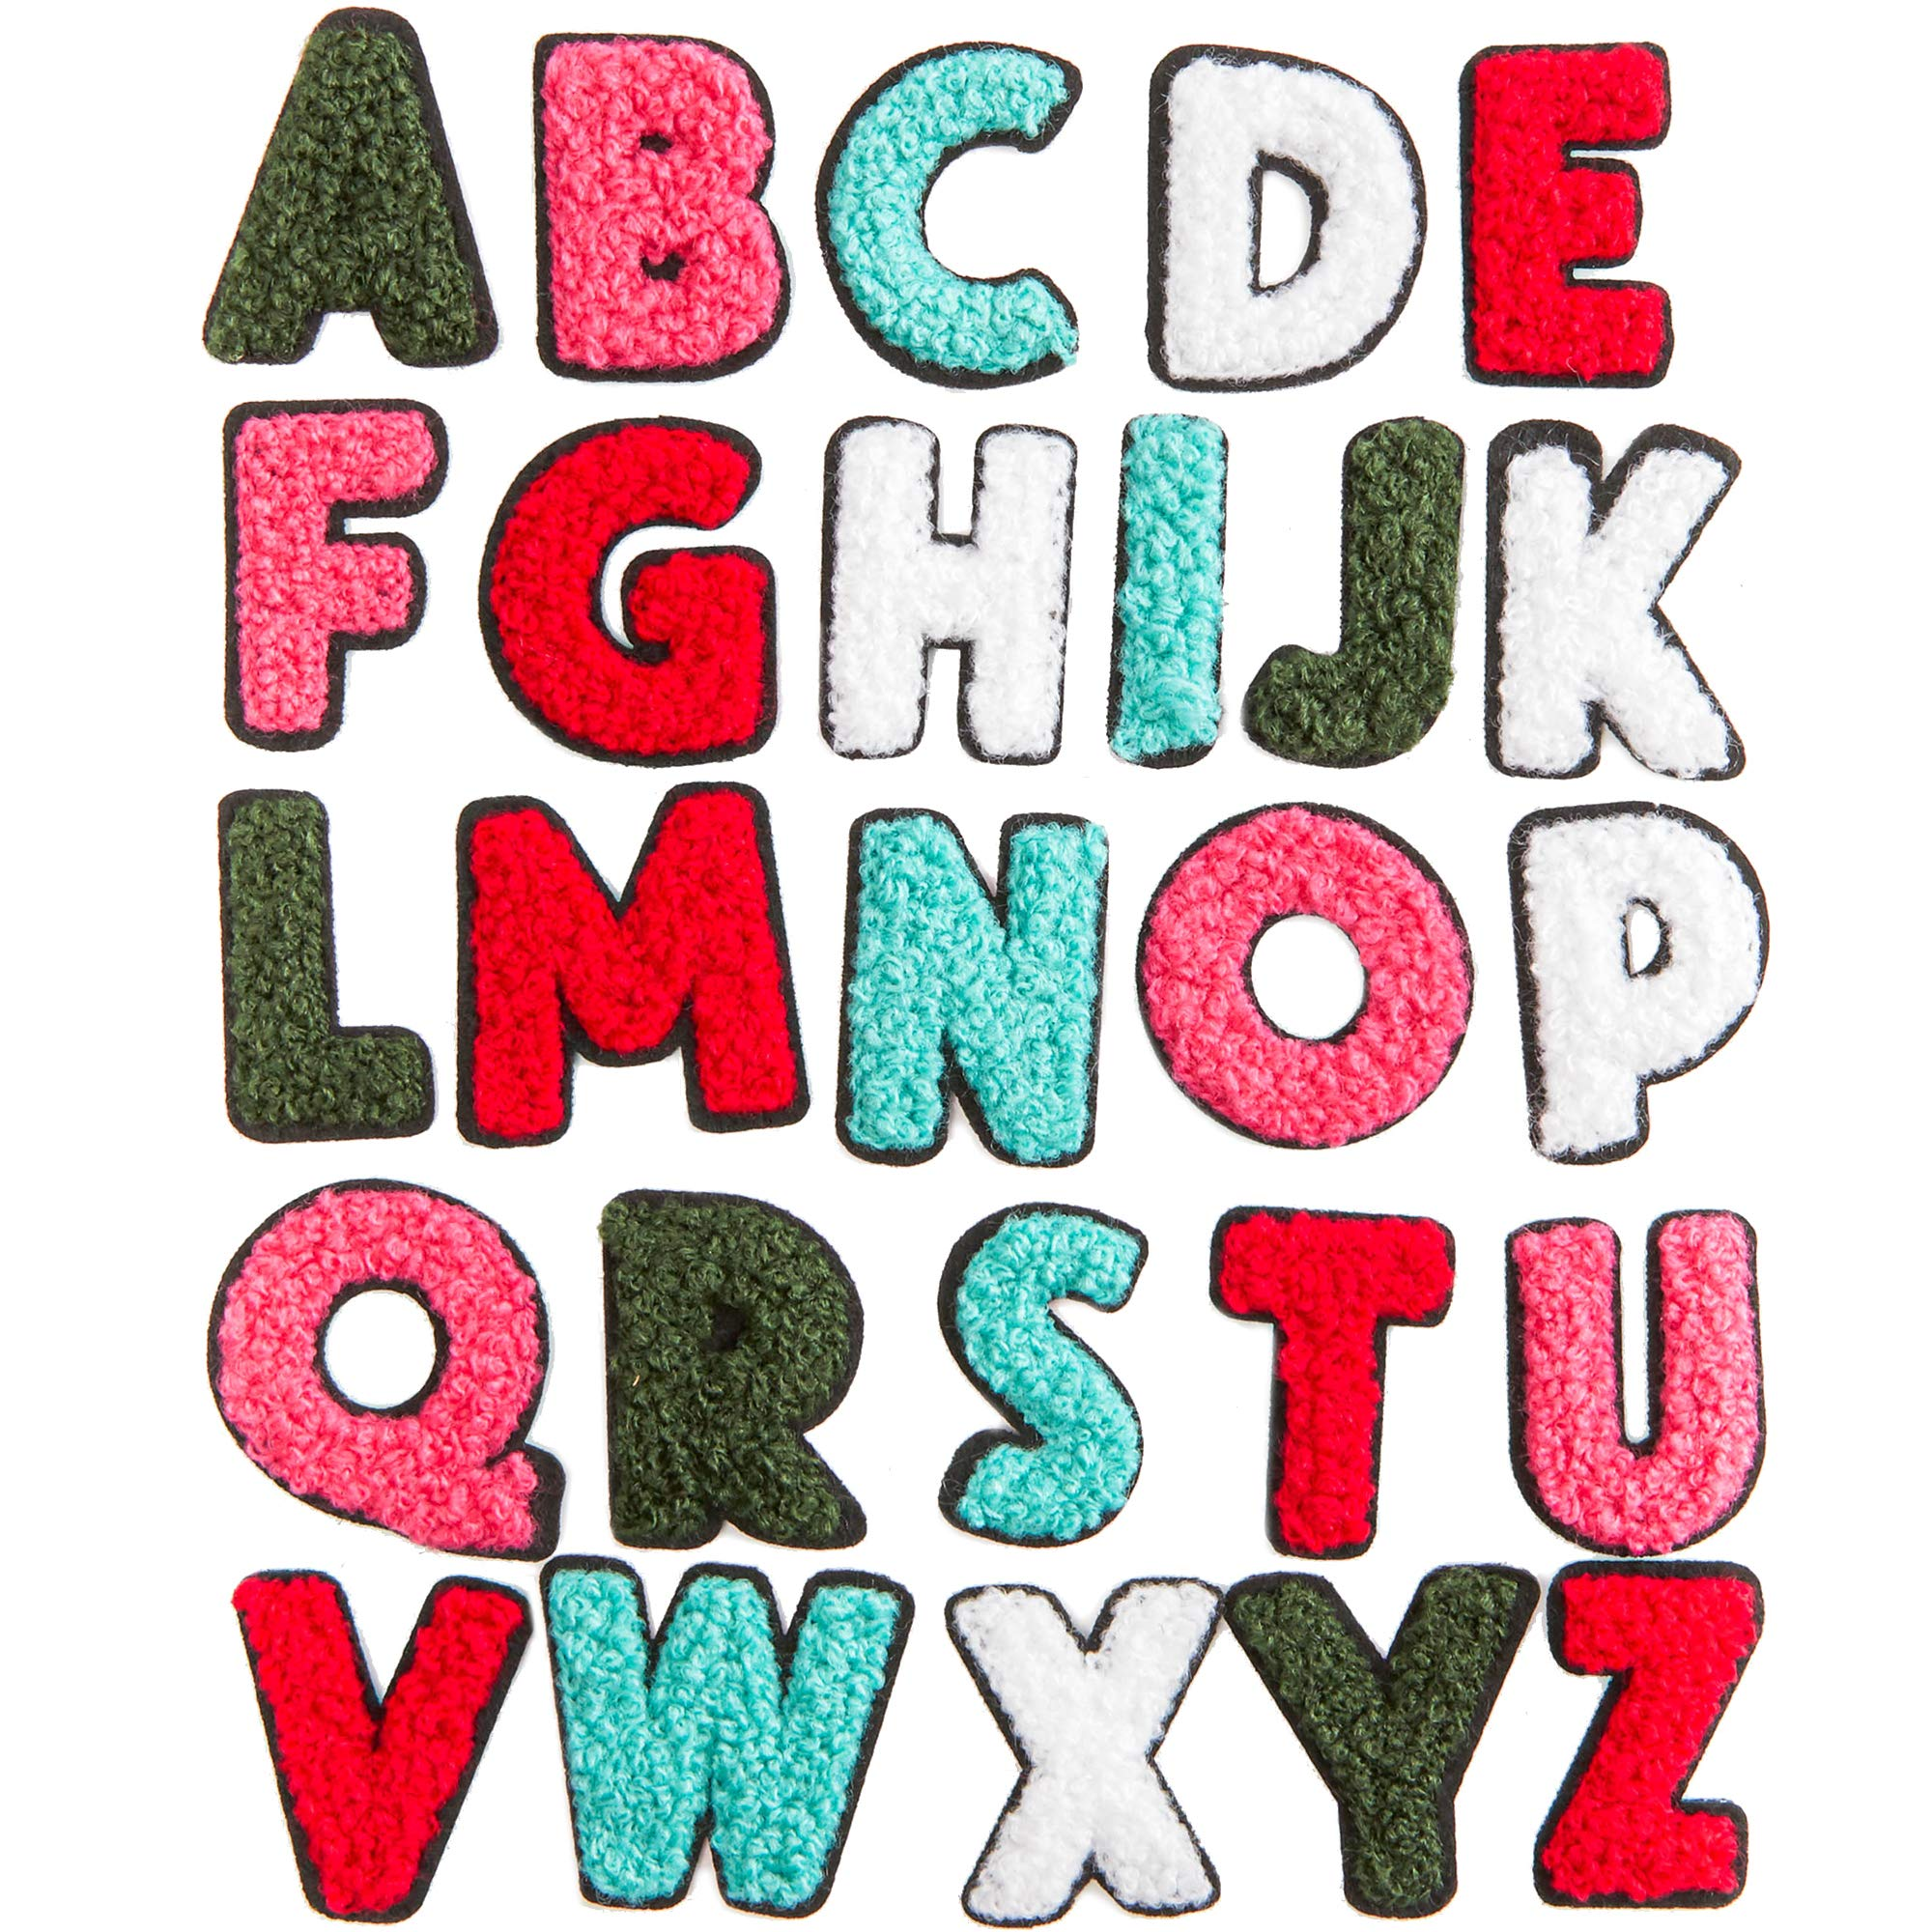 Iron On Patches, A-Z Patch Letters (1.4 x 1.3 in, 52 Pieces)